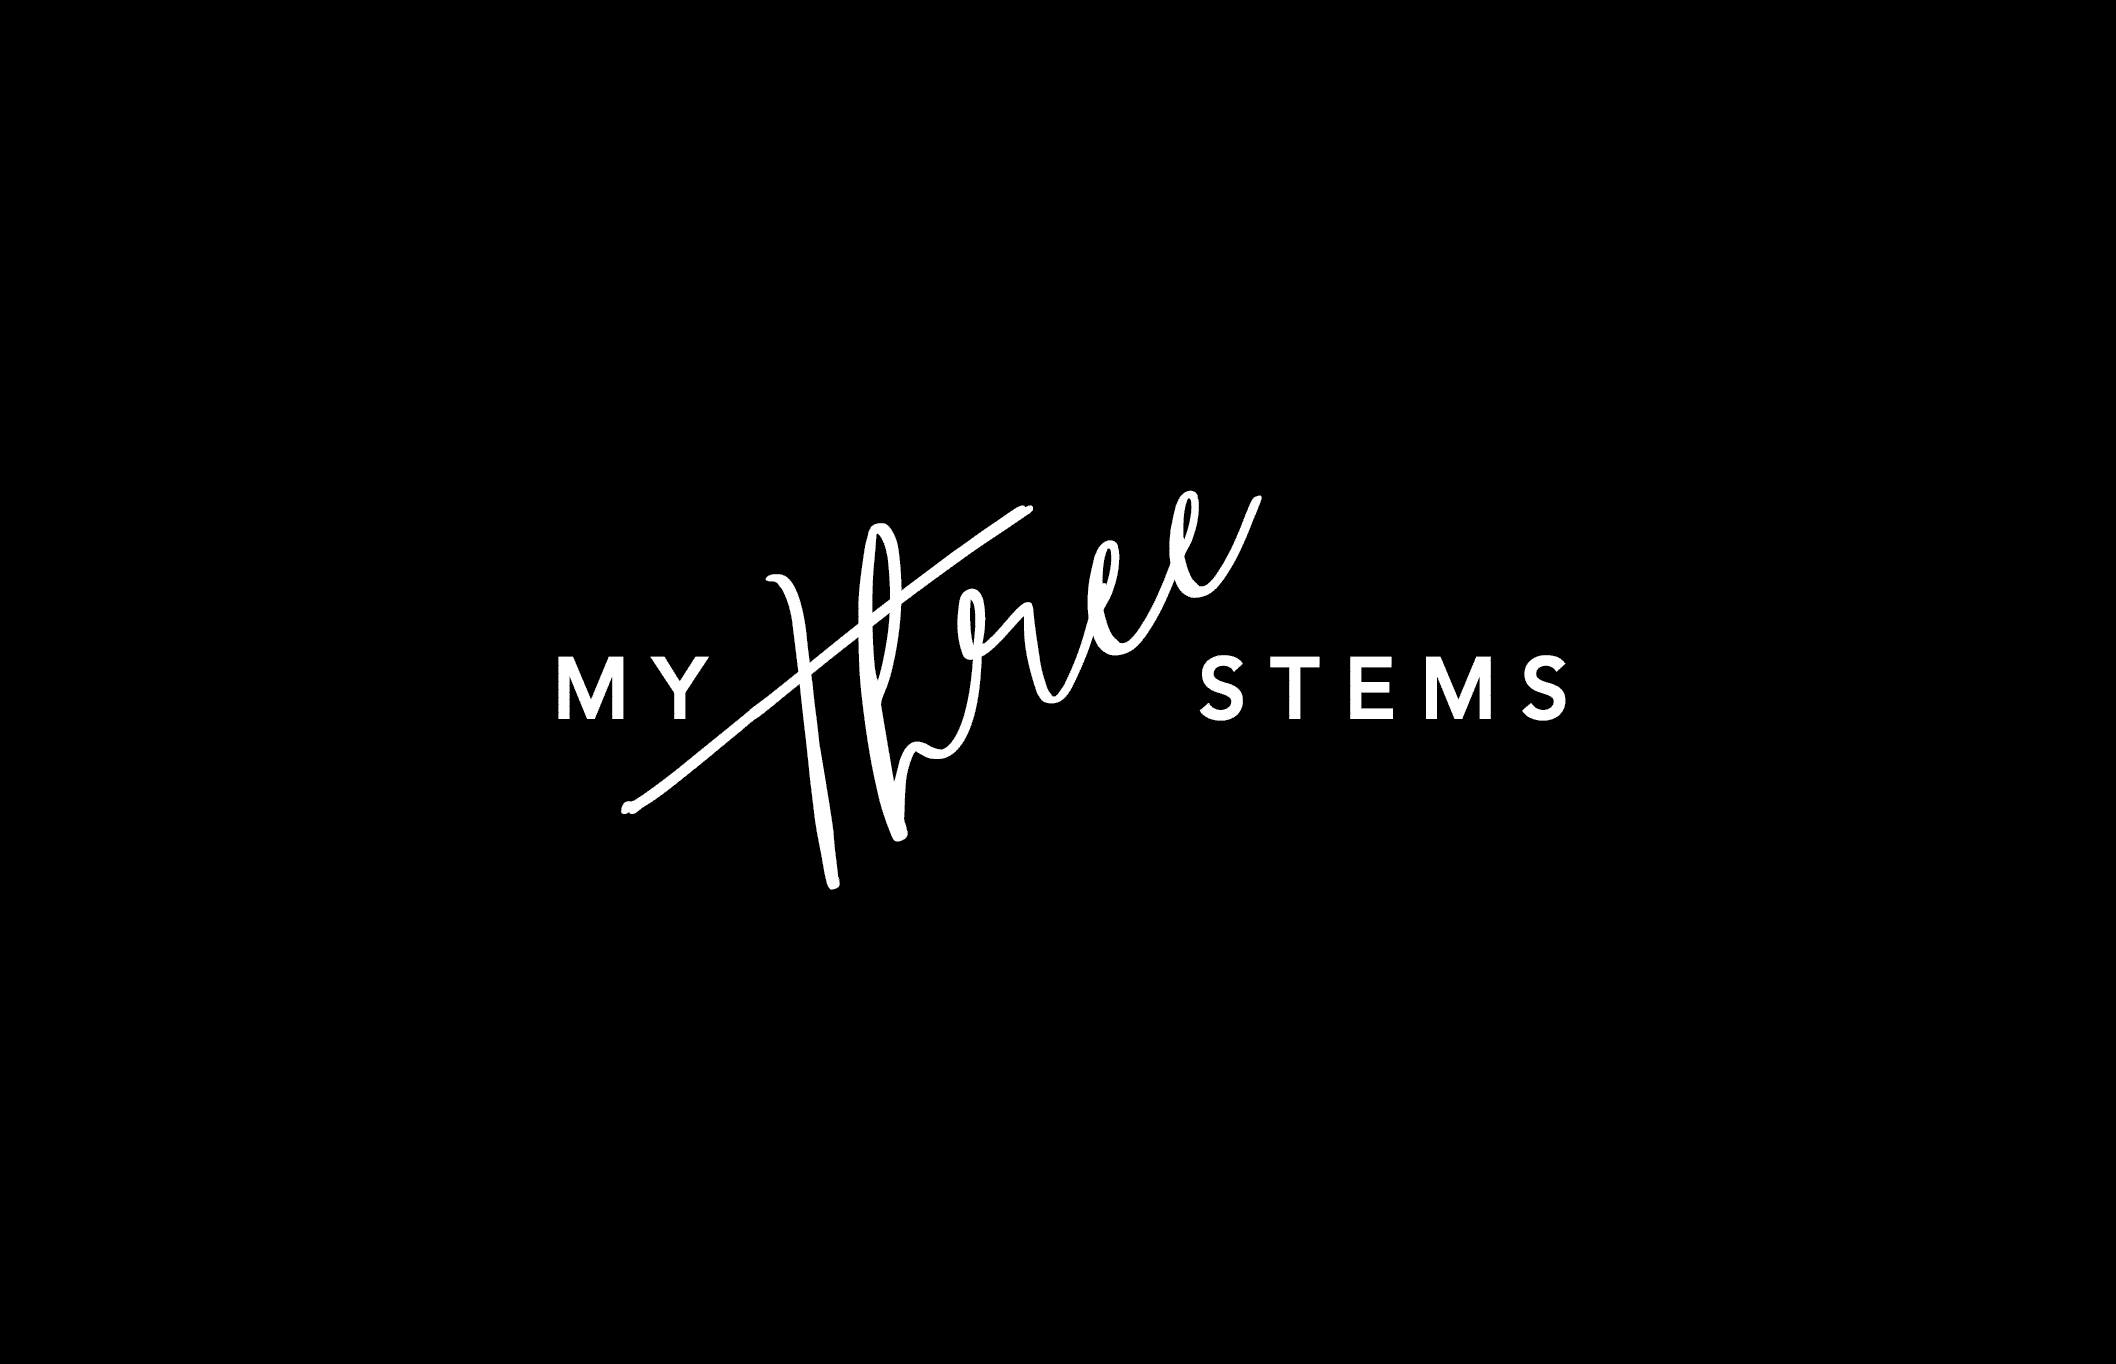 My Three Stems Black logo